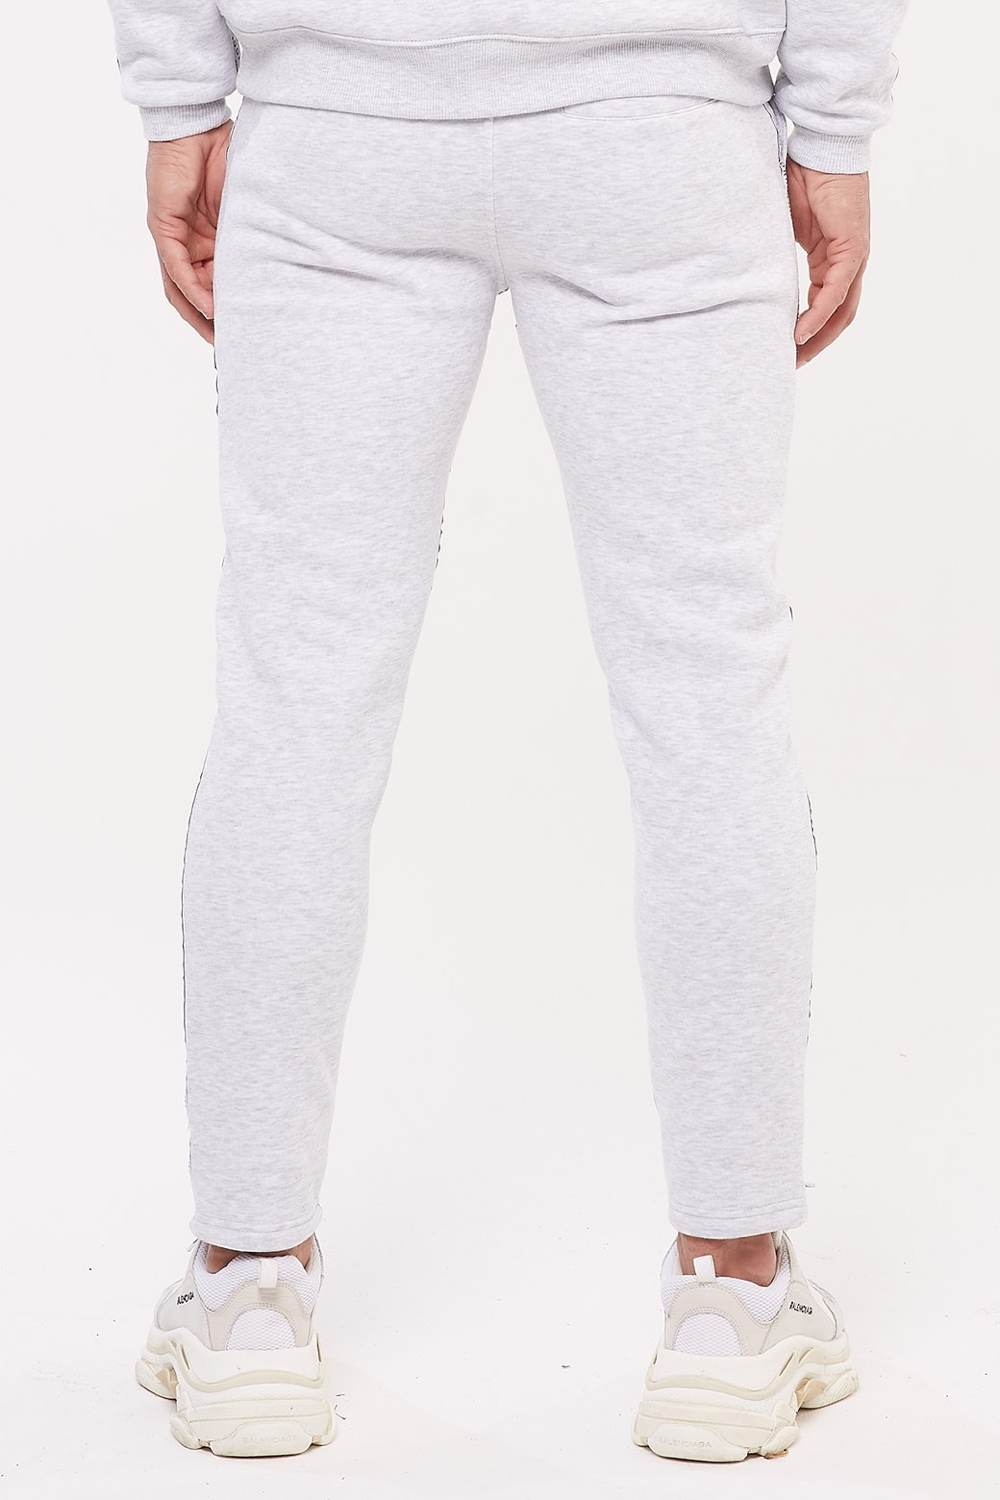 Good For Nothing Future Taped Joggers - Grey - 3